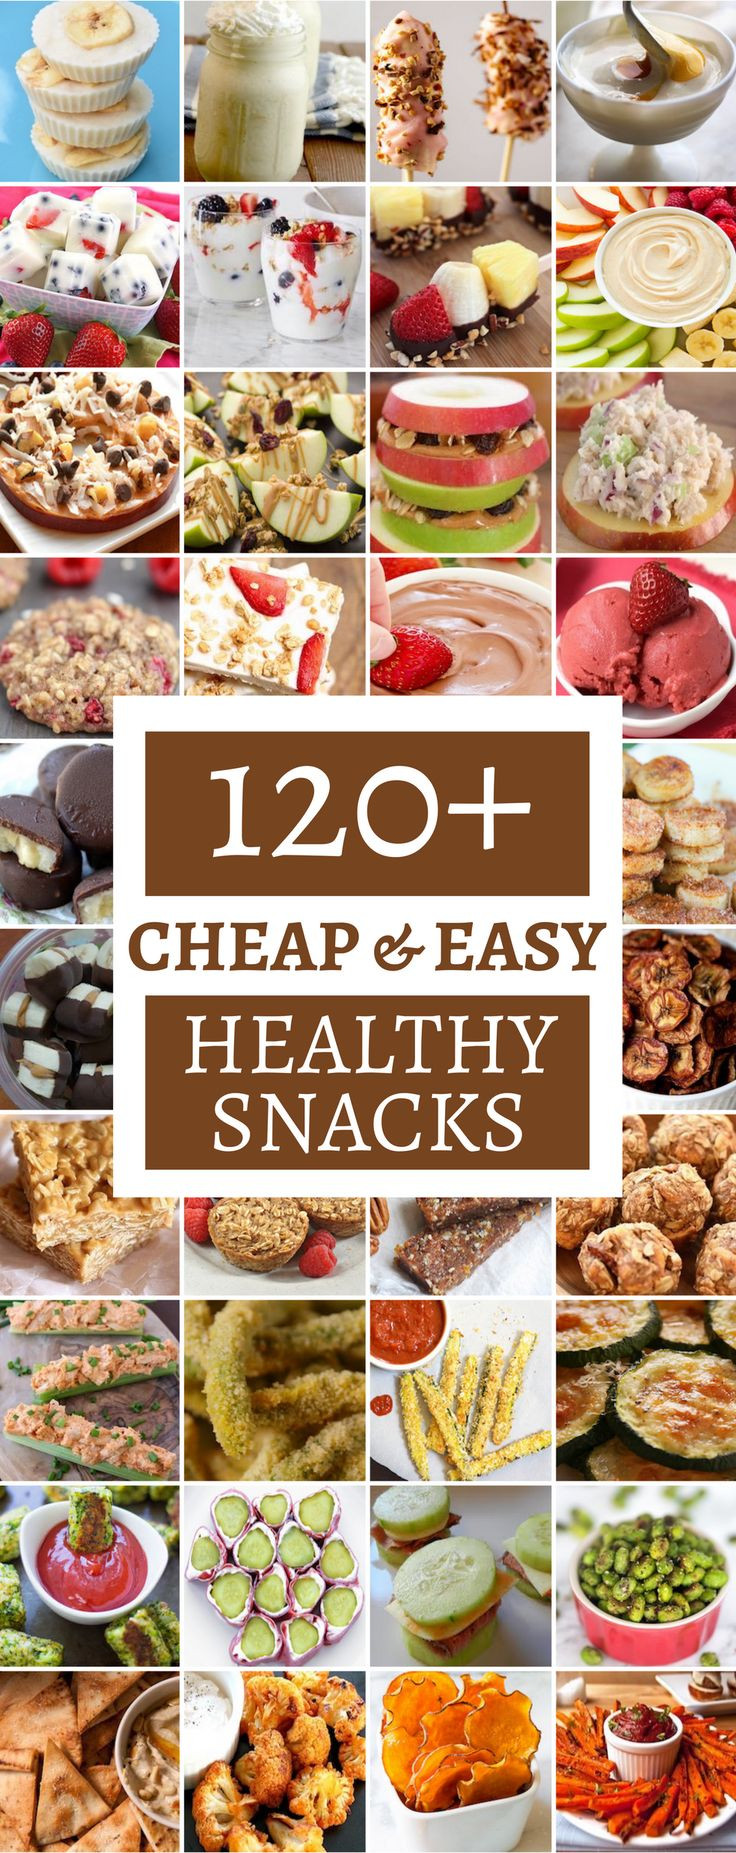 Healthy Inexpensive Snacks  Best 25 Cheap healthy snacks ideas on Pinterest